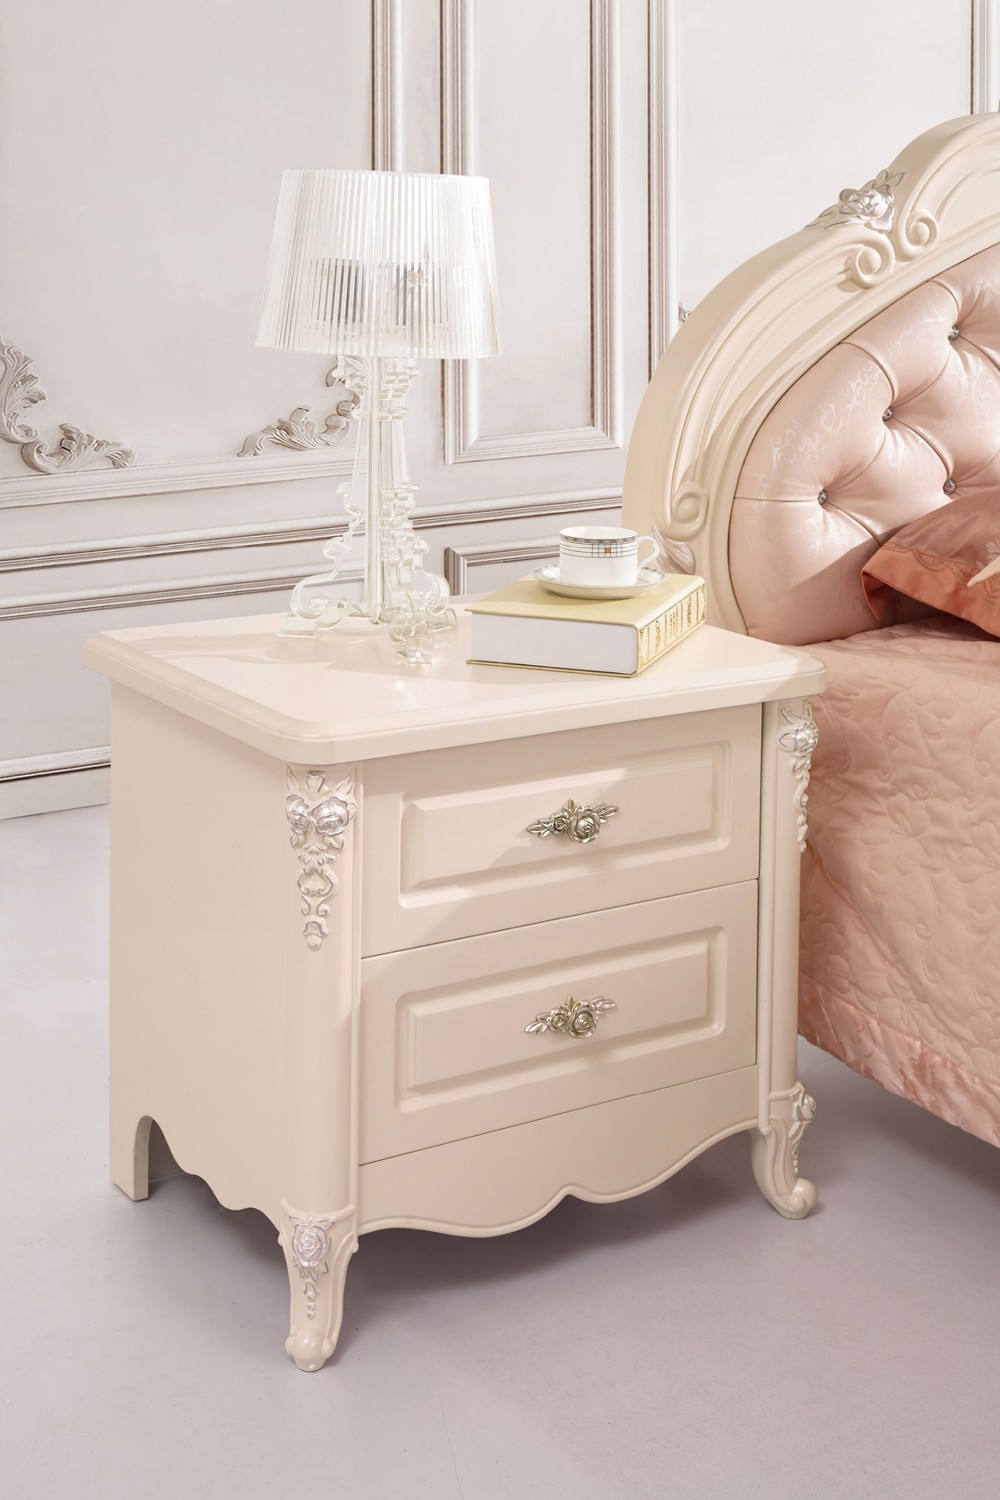 high class european style bedside tablenightstand white handcarved solidwood bedroom furniture from foshan marketset be set.  real new high class european style bedside tablenightstand